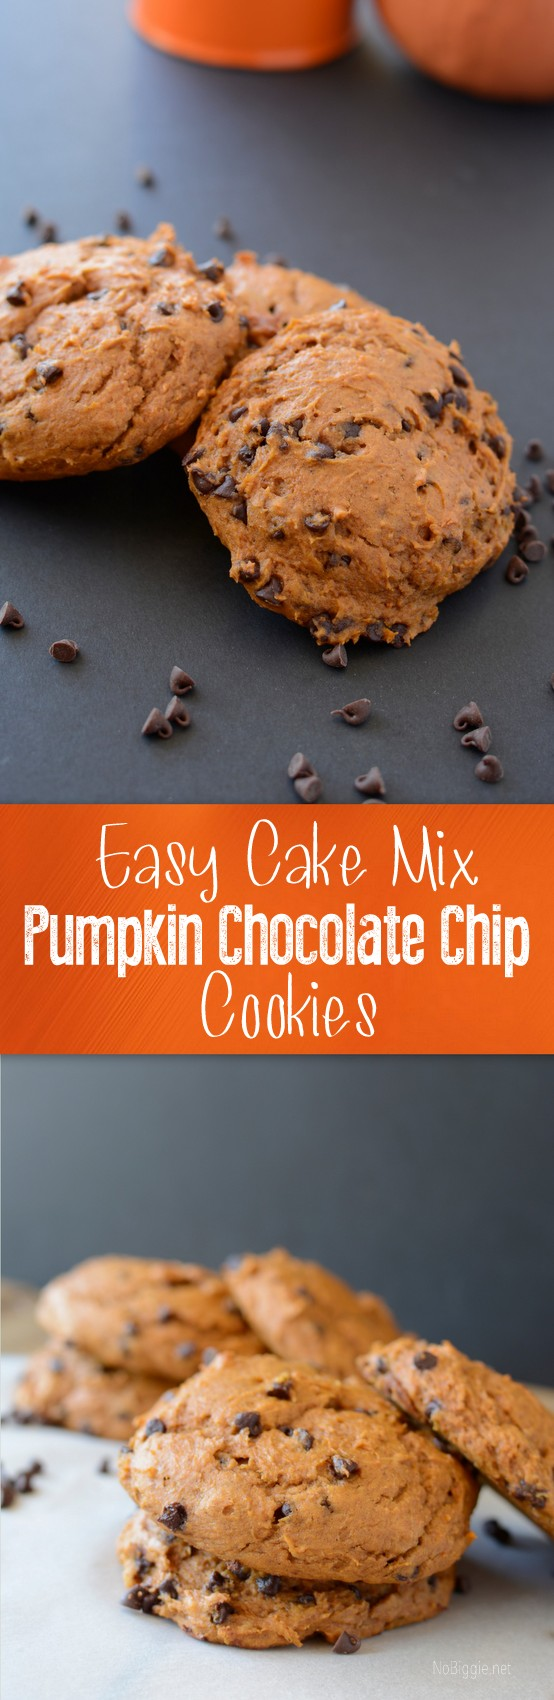 Chocolate Pumpkin Cupcakes Using Cake Mix